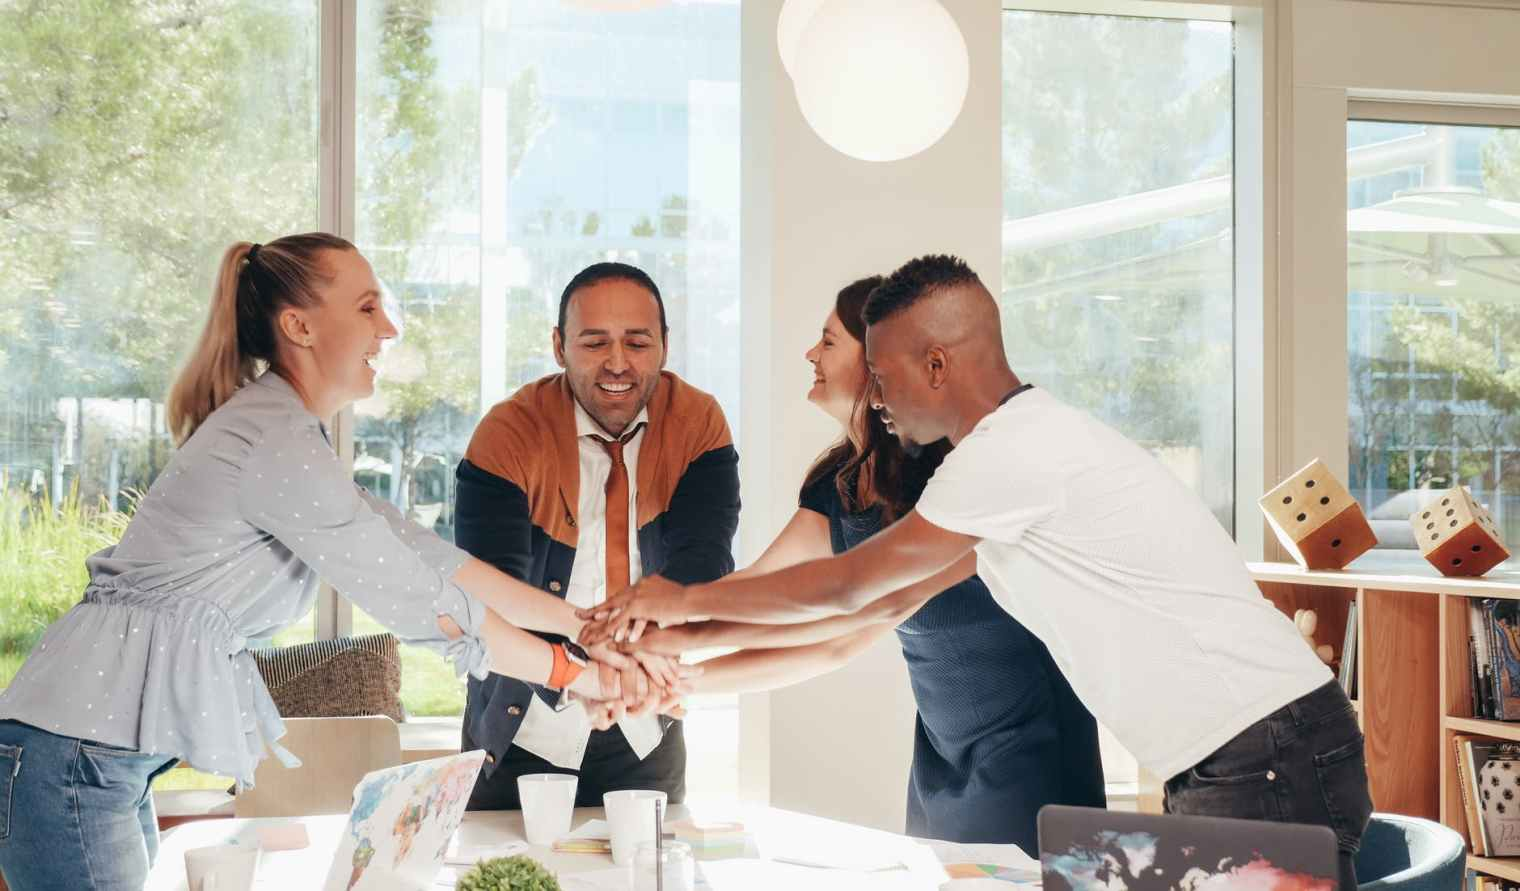 smiling multiracial coworkers with hands together in office